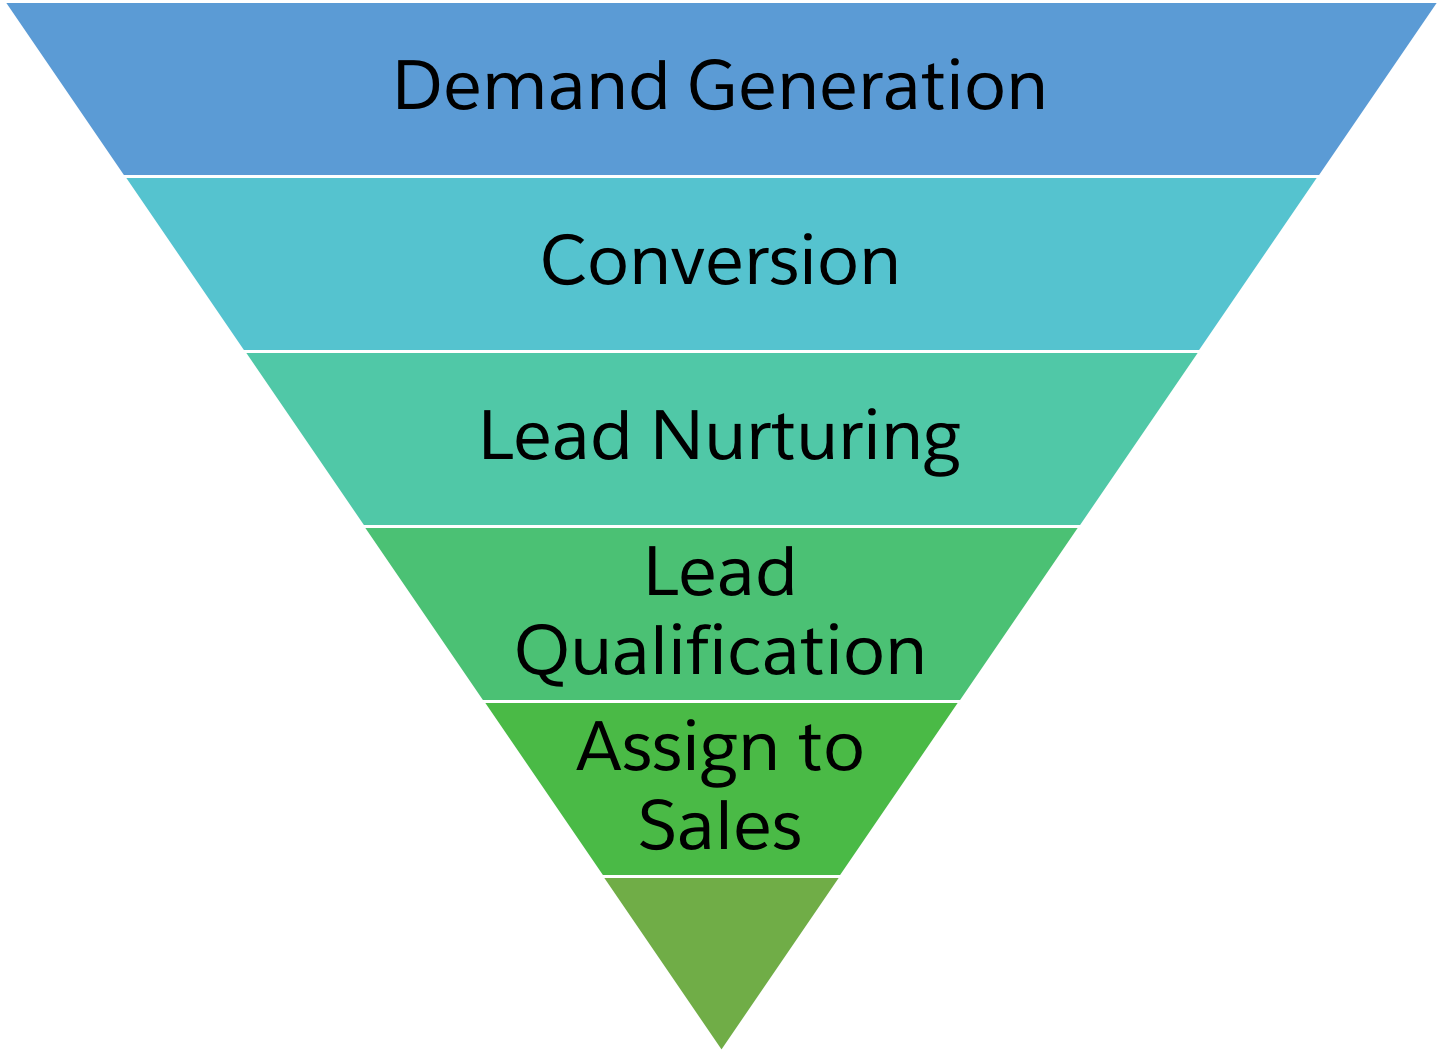 Funnel that displays the typical prospect journey in Pardot. At the widest part of the funnel, is Demand Generation, which then leads to conversion, Lead Nurturing, Lead Qualification, and at the narrowest part of the funnel is Assign to Sales.